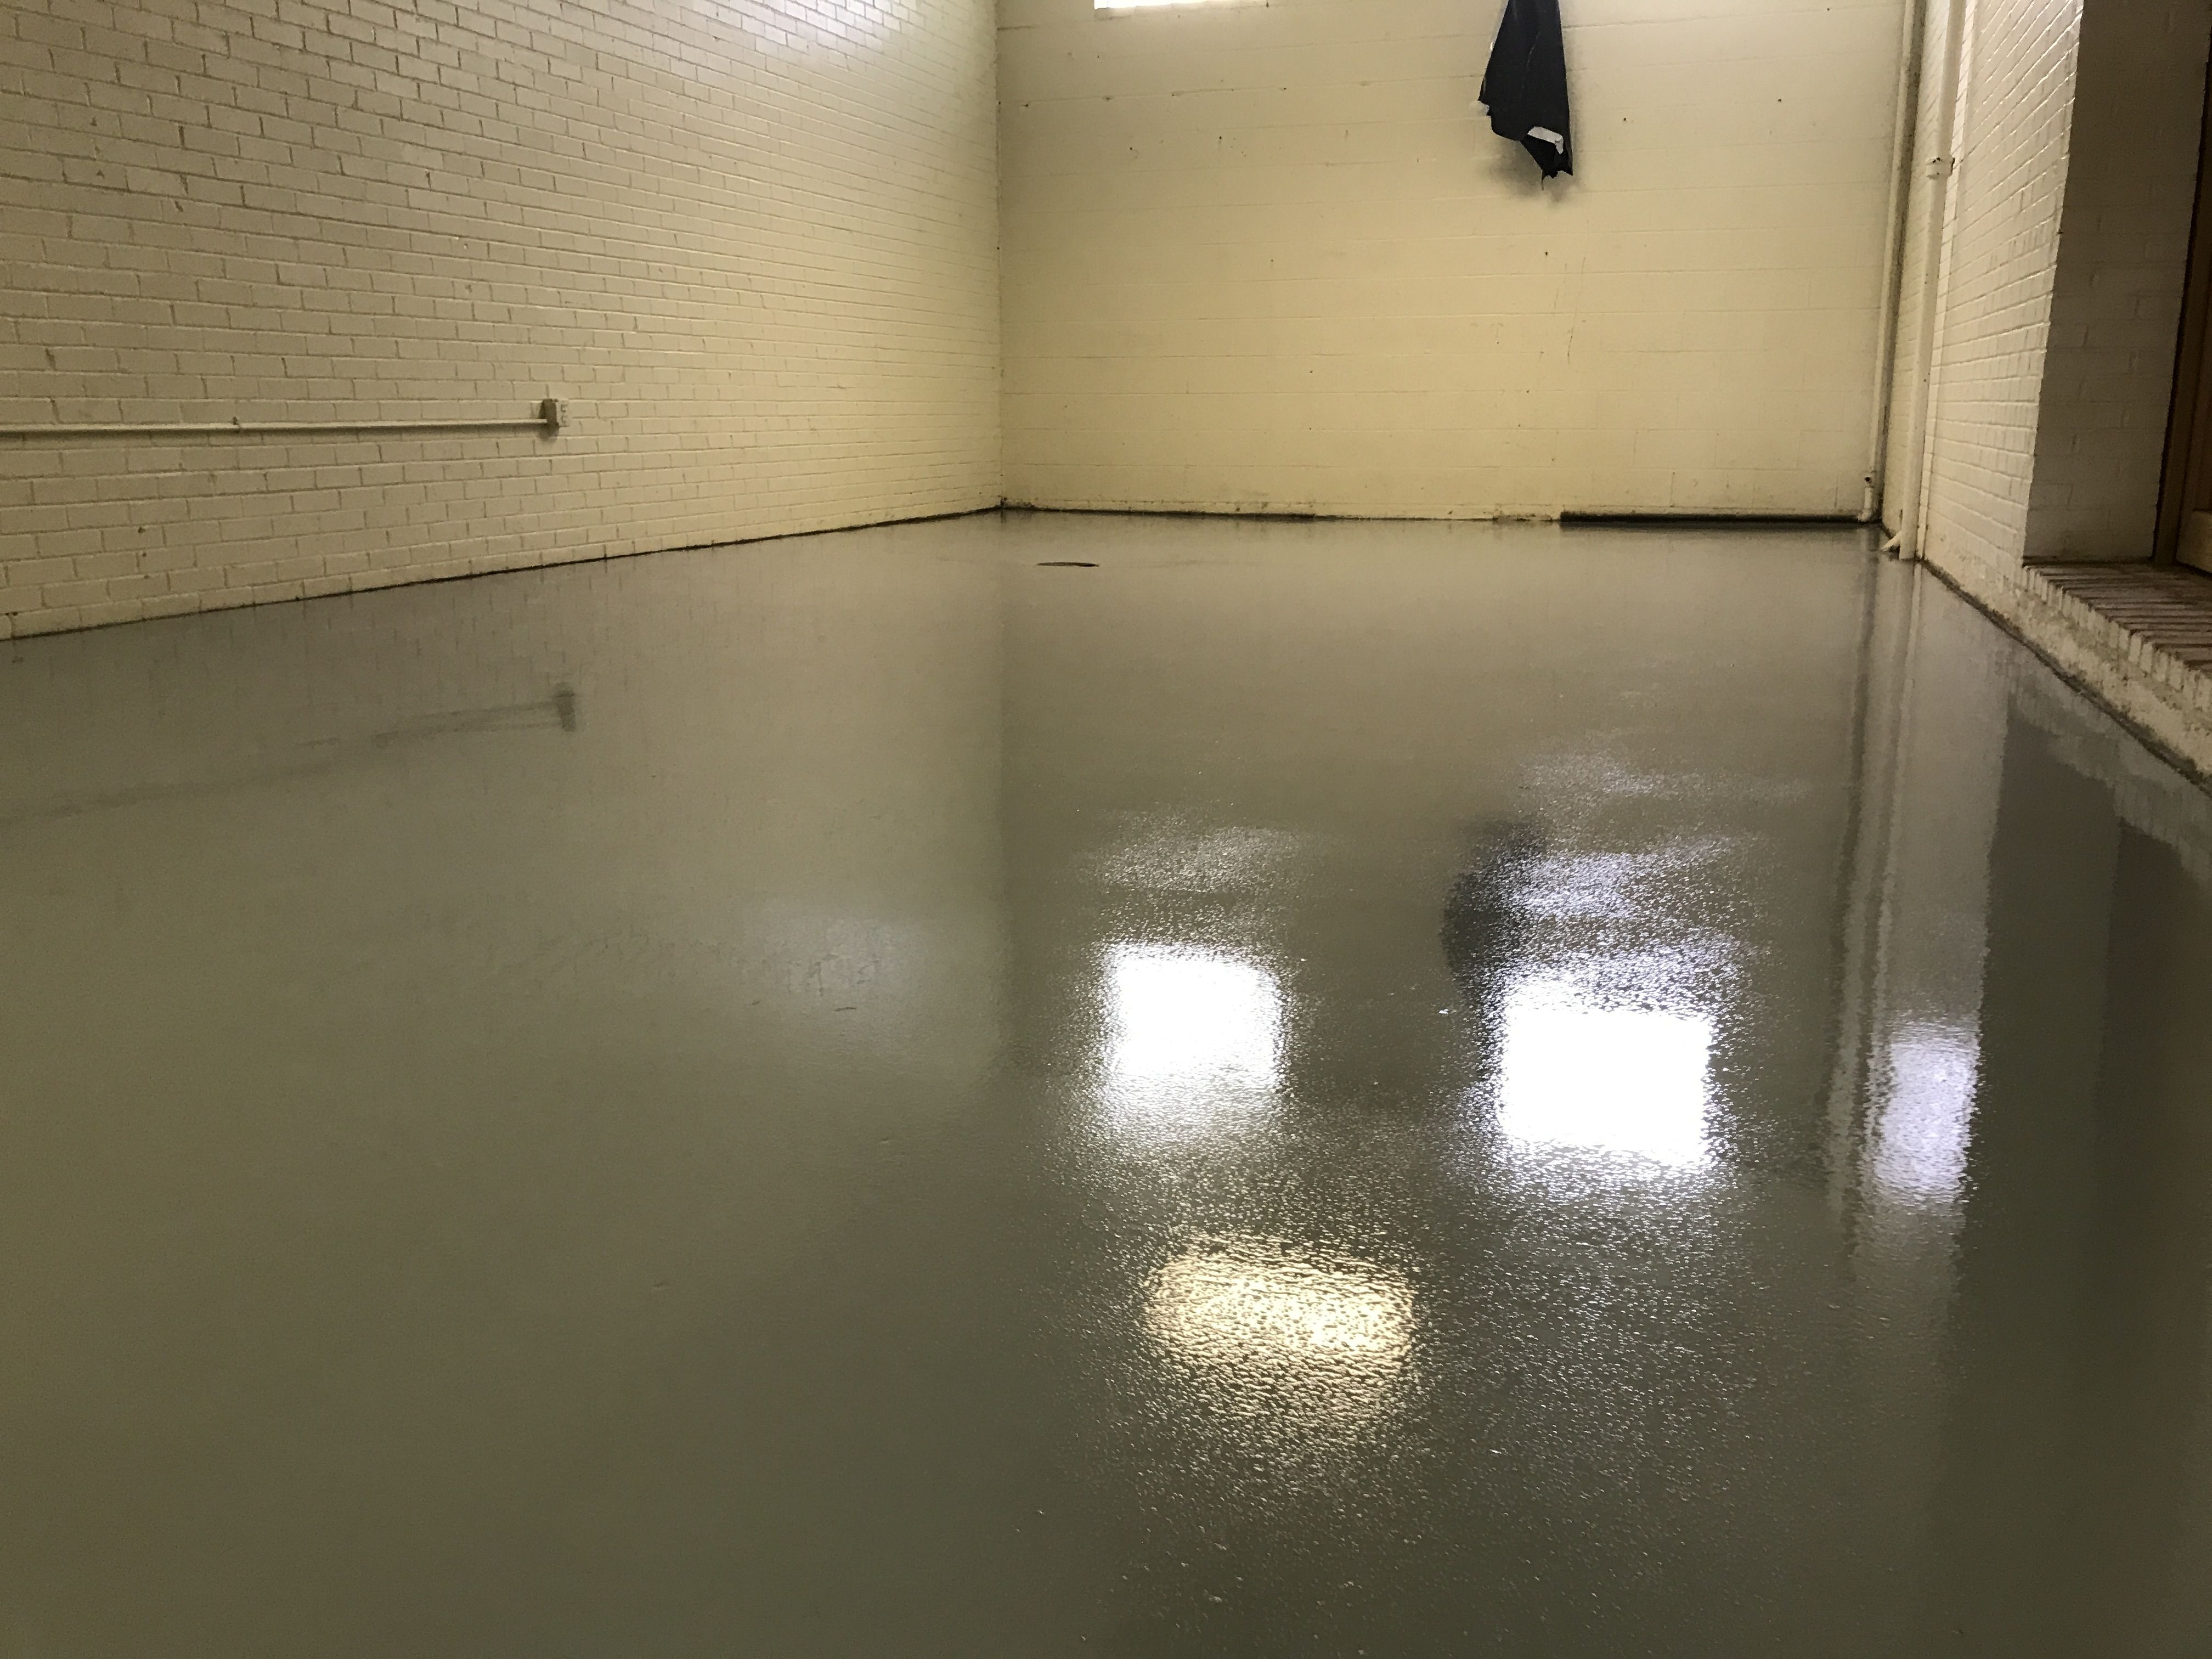 We do commercial epoxy flooring too. Get a free estimate